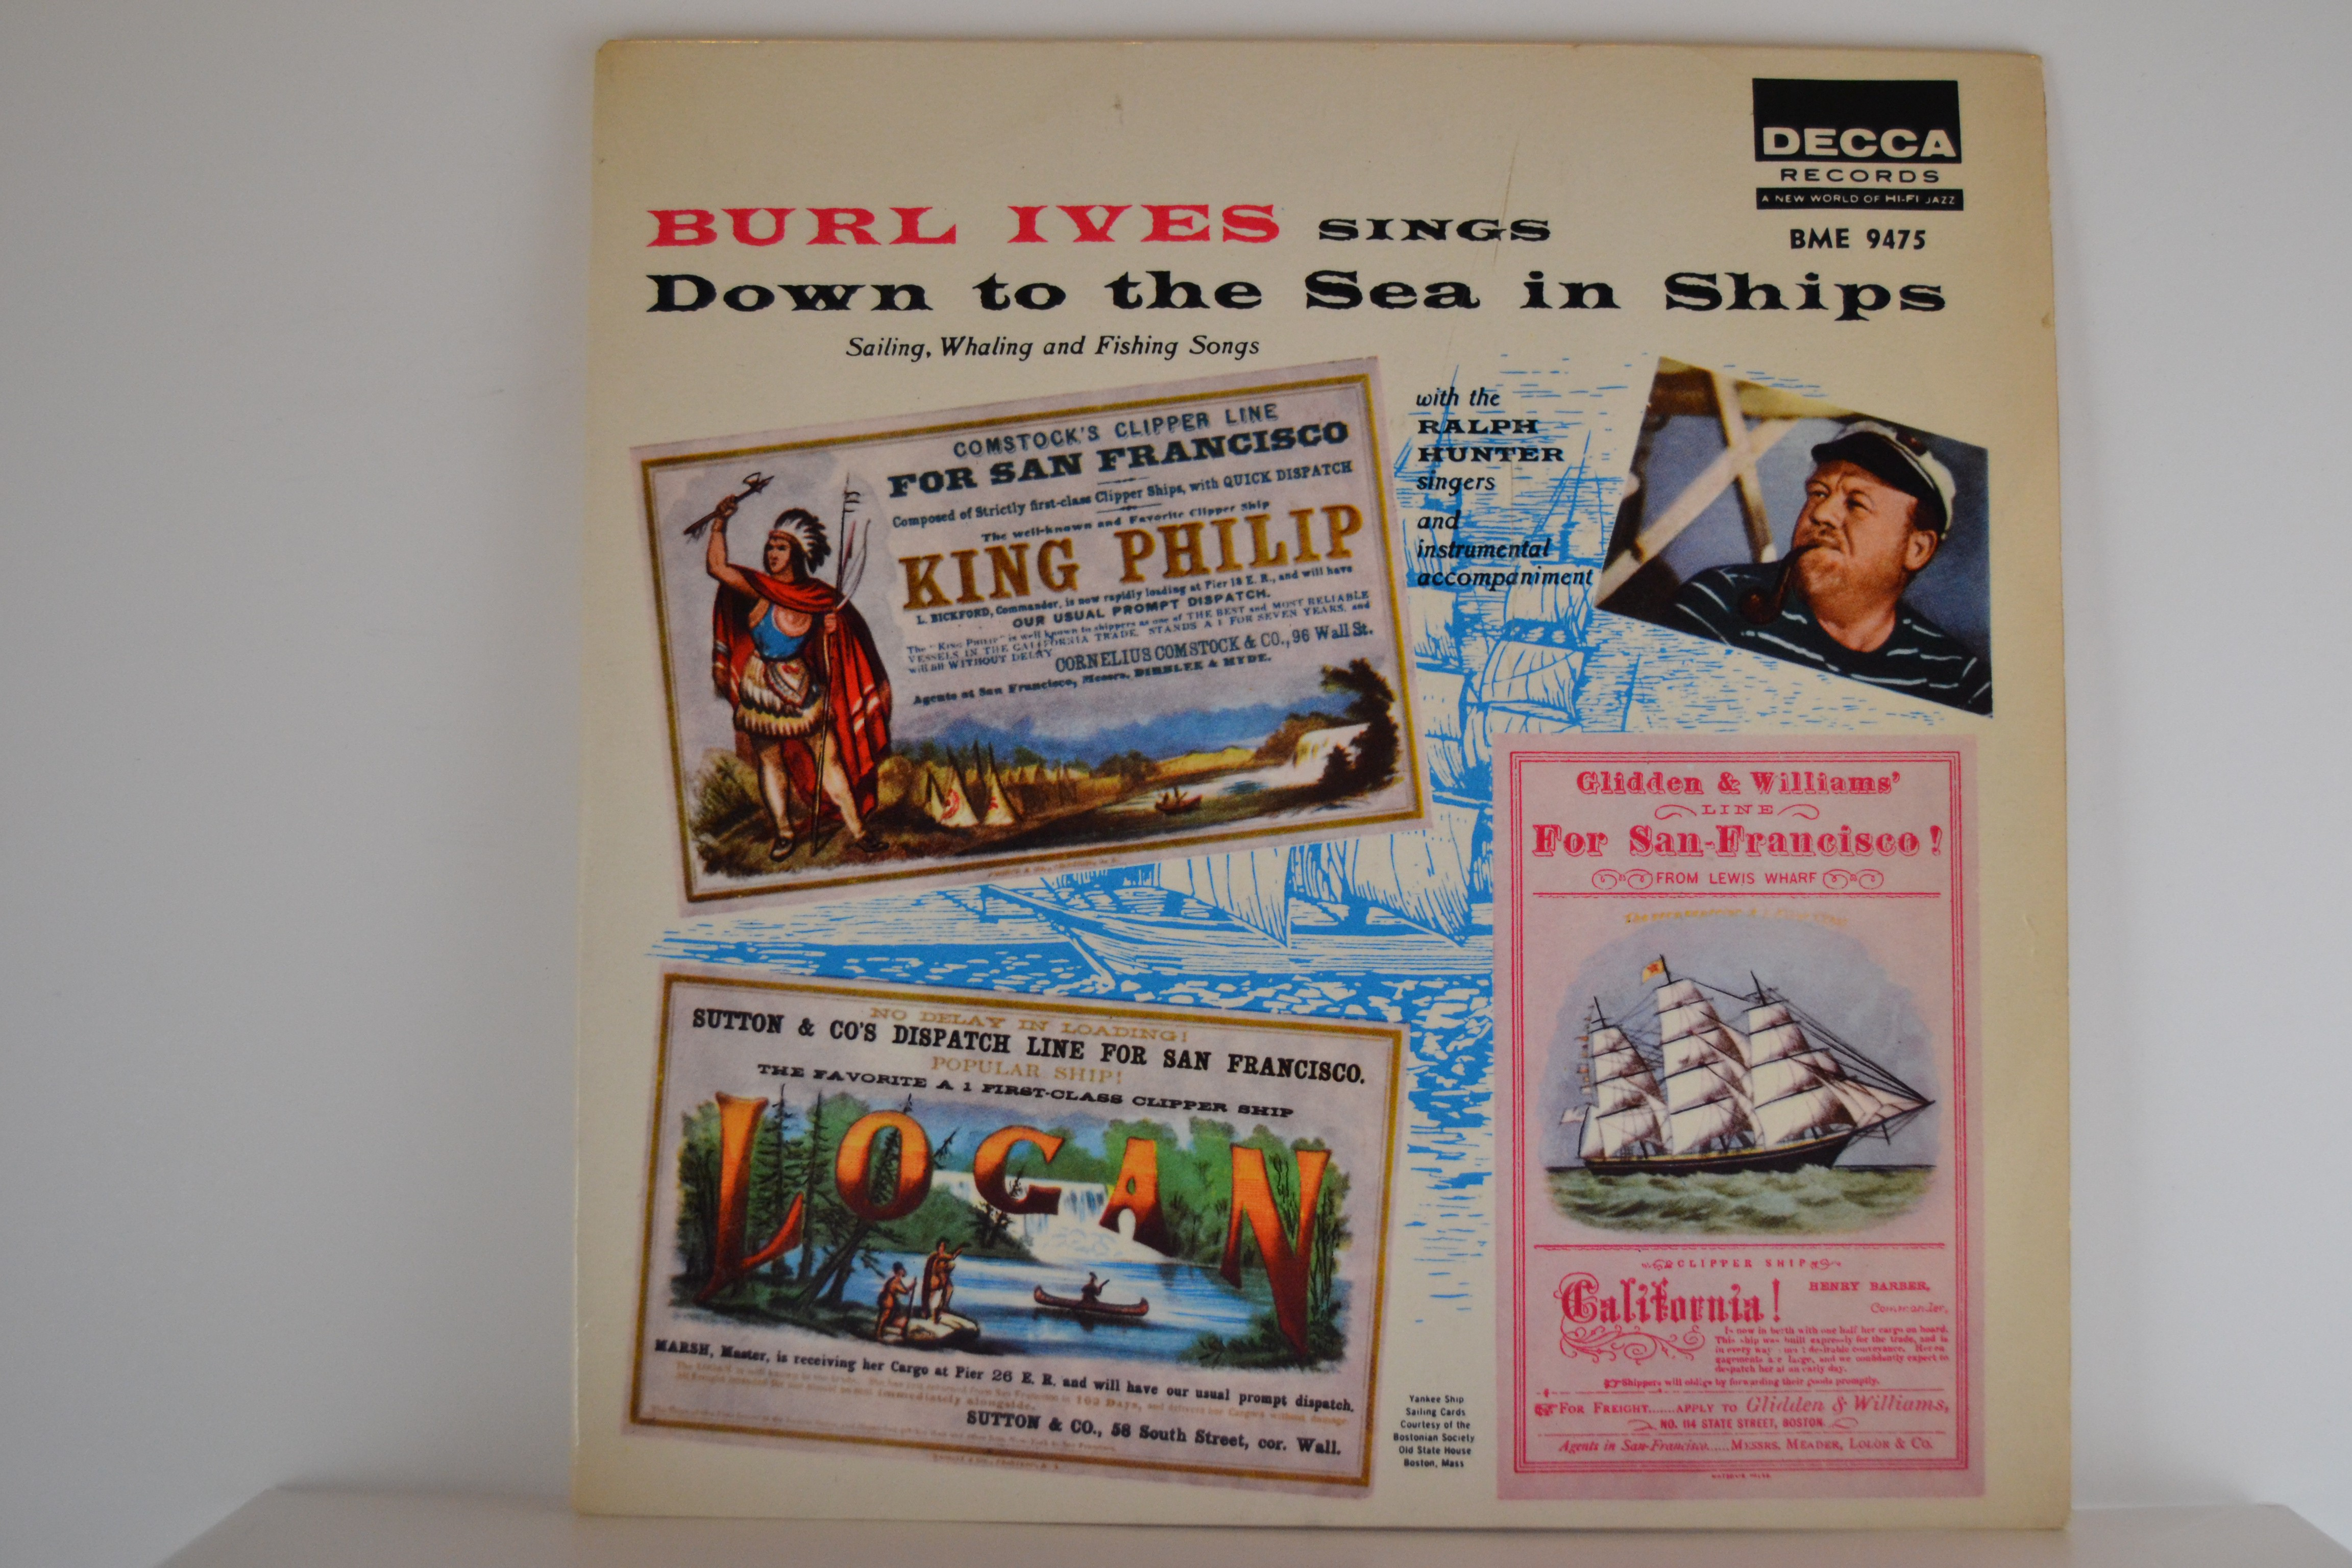 BURL IVES : (EP) The drunken sailor / Rolling home / Jack was every inch a sailor / Blow ye winds!